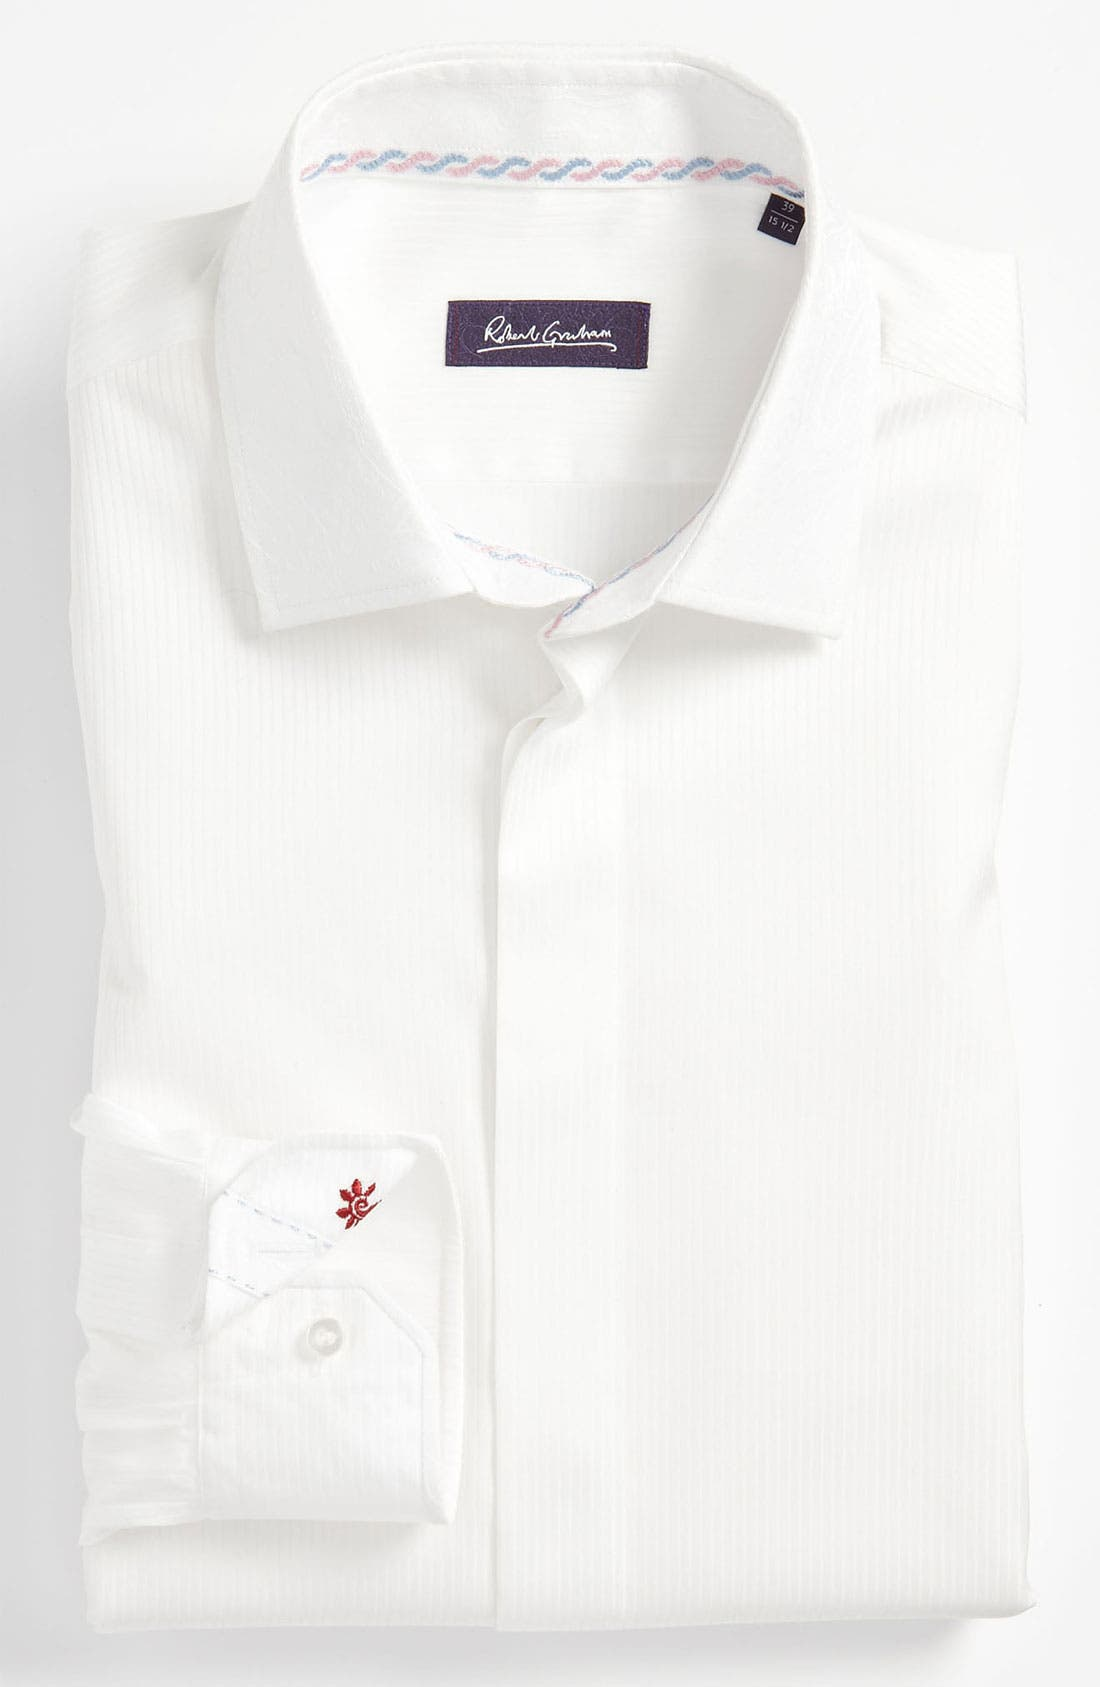 Alternate Image 1 Selected - Robert Graham Trim Fit Dress Shirt